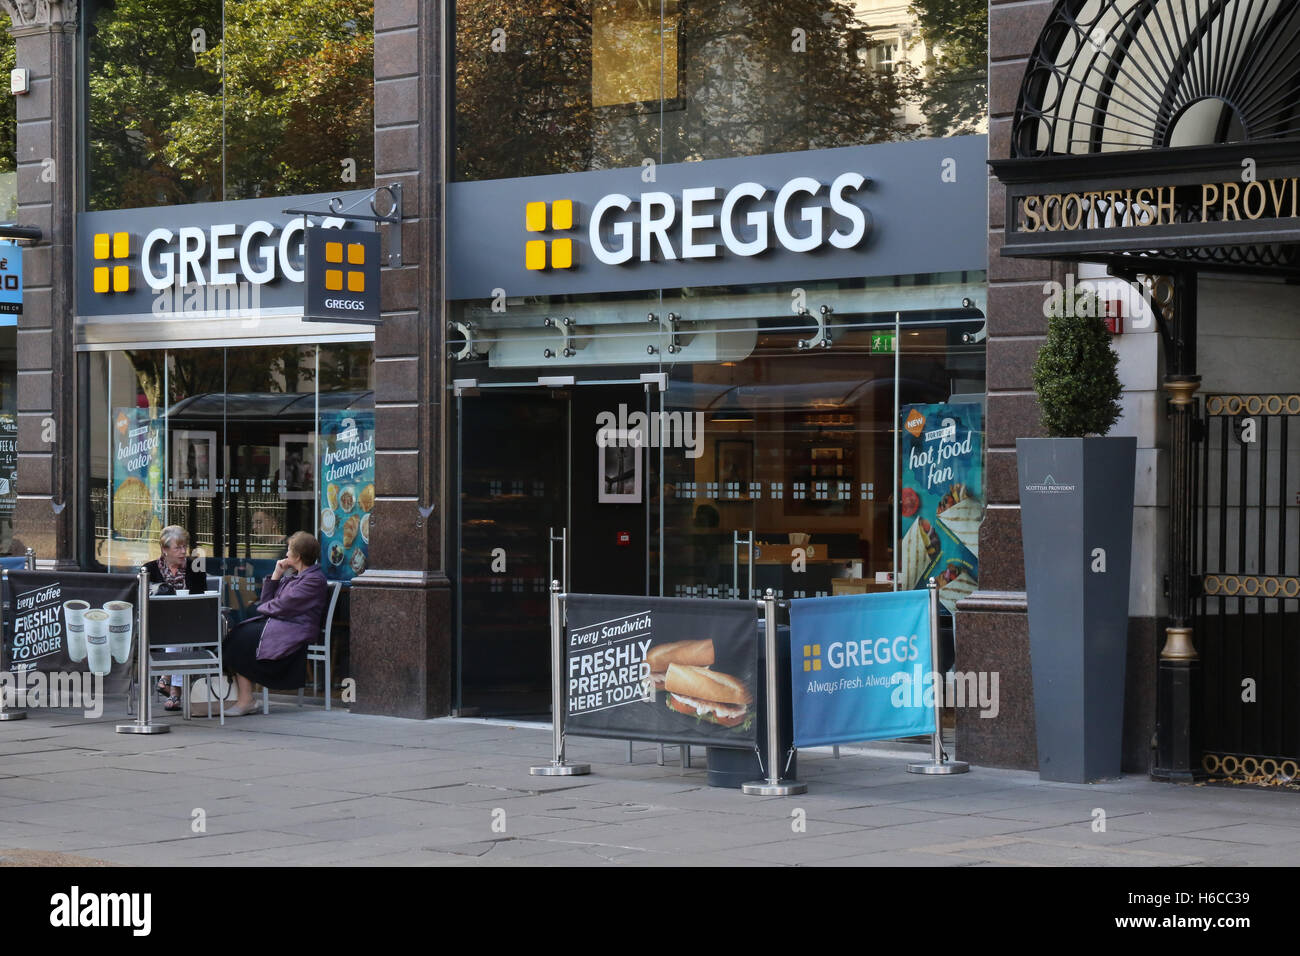 Greggs shop in Donegall Square West, Belfast, Northern Ireland. - Stock Image